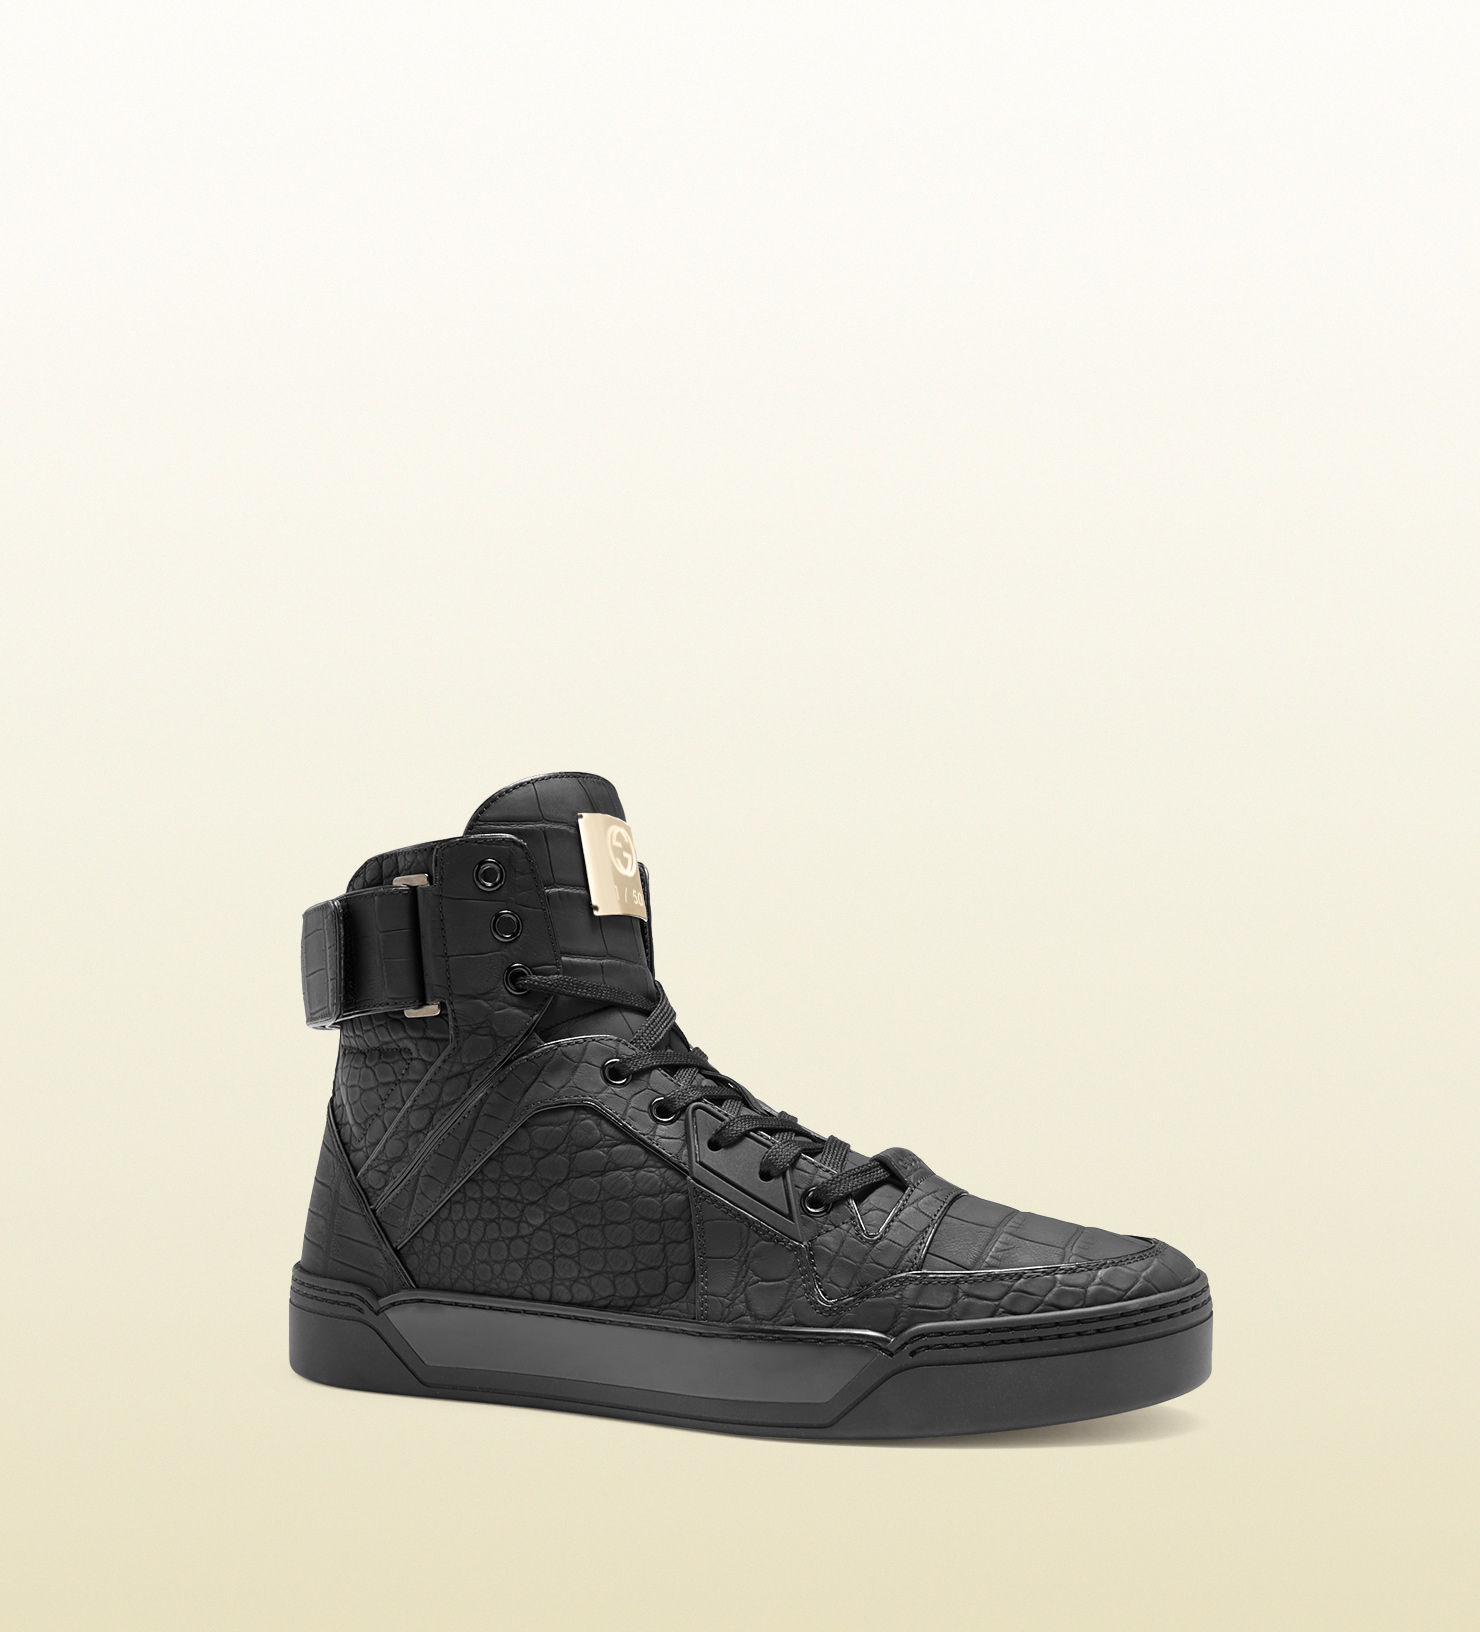 864a2746f27 Lyst - Gucci Limited Edition Crocodile Sneakers in Black for Men